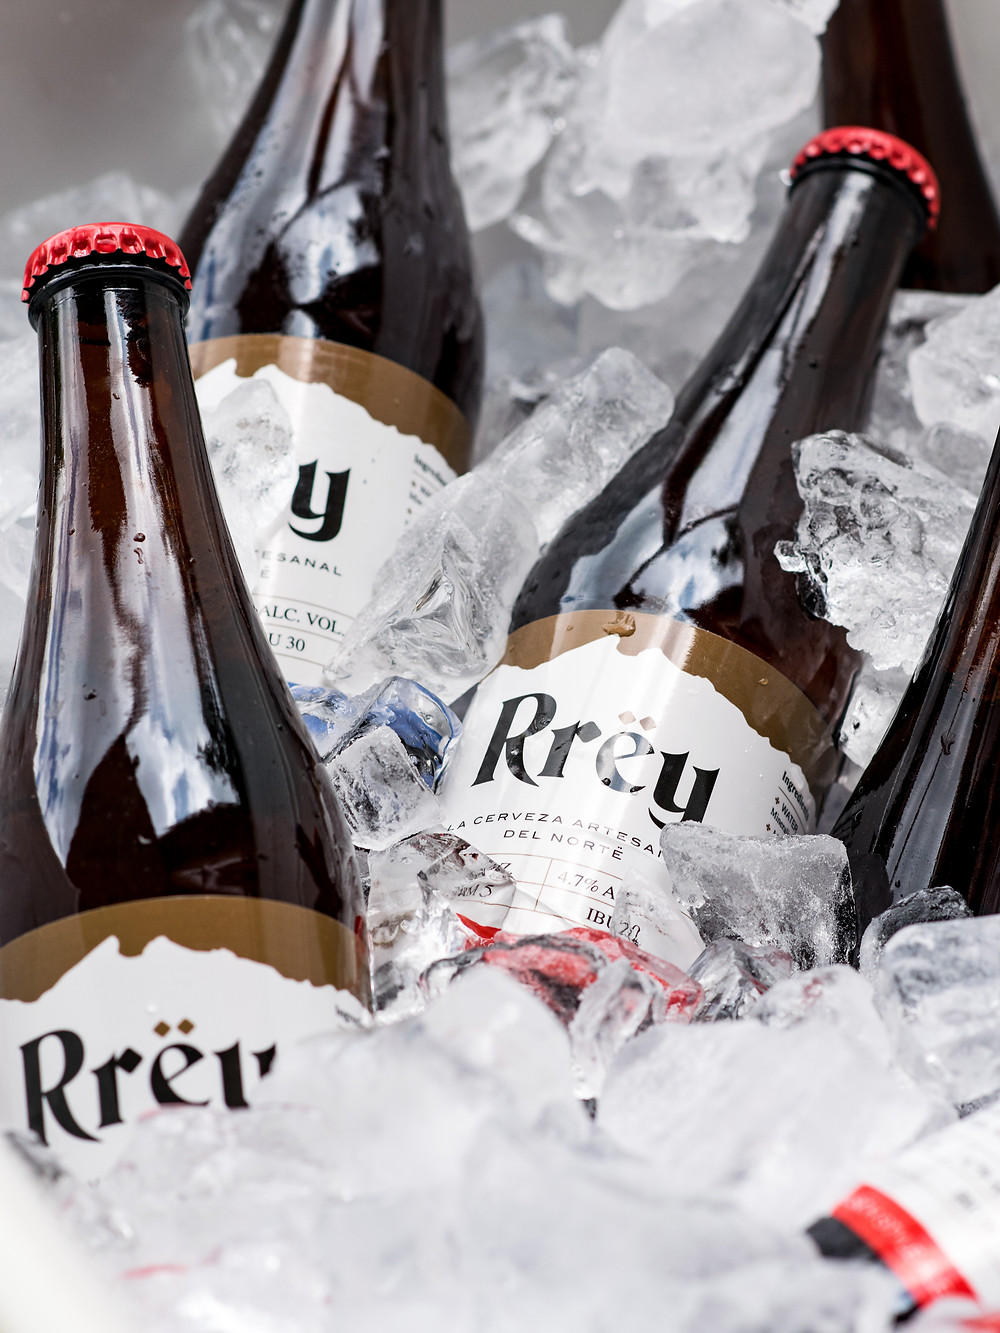 Quest Beverage is importing Mexican craft beers into the U.S. including a Kölsch, shown here, and a London-style ale from Cerveza Rrëy, based in Monterrey, Mexico. (Photo: Quest Beverage)